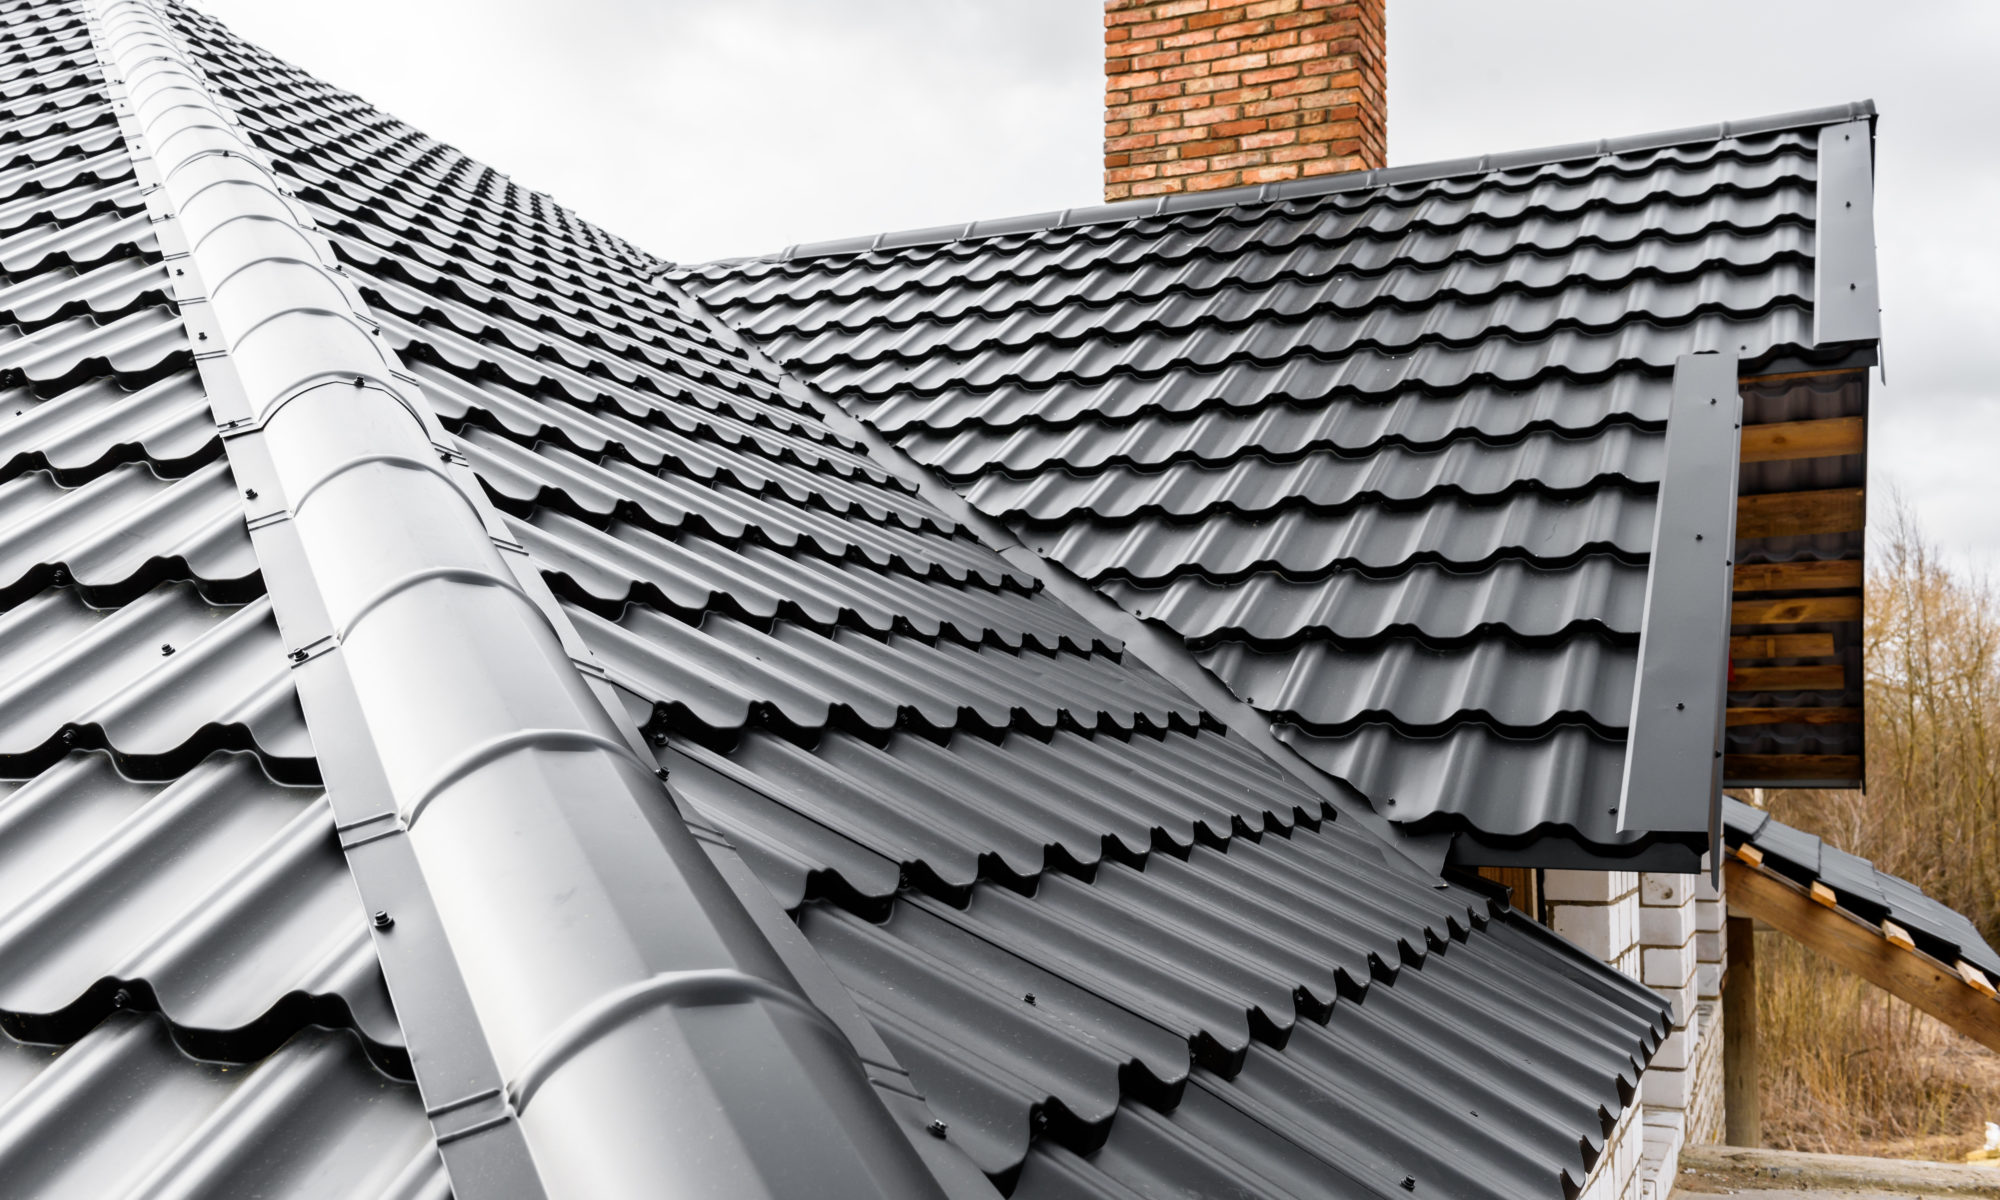 comparing shingle options to metal roofing